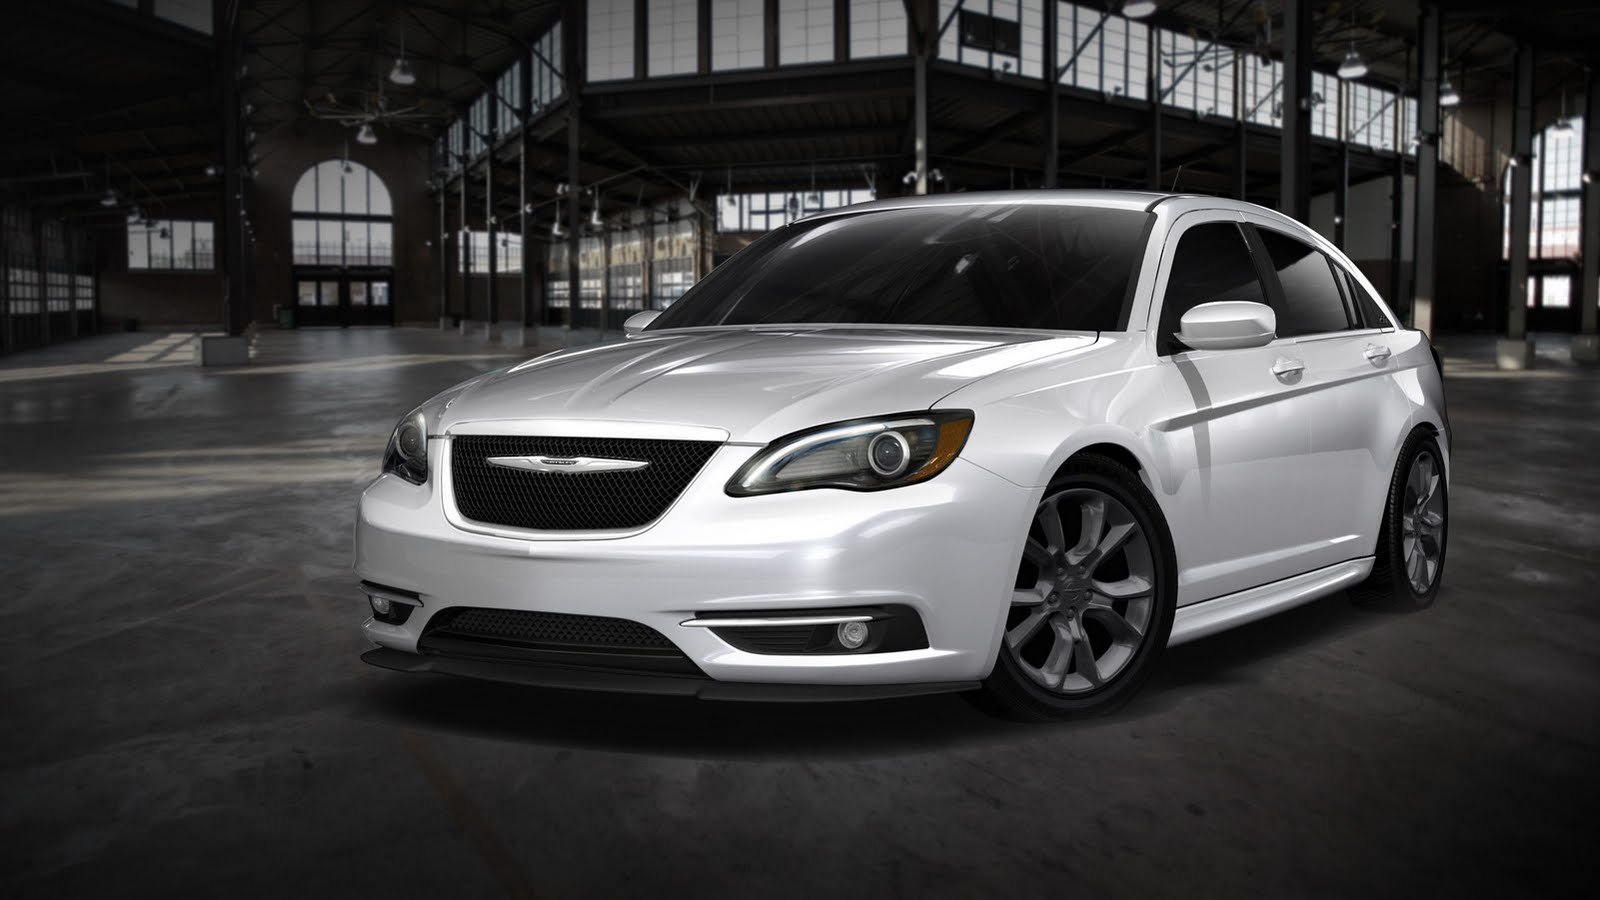 2012-Chrysler-200-Super-s-Mopar-2